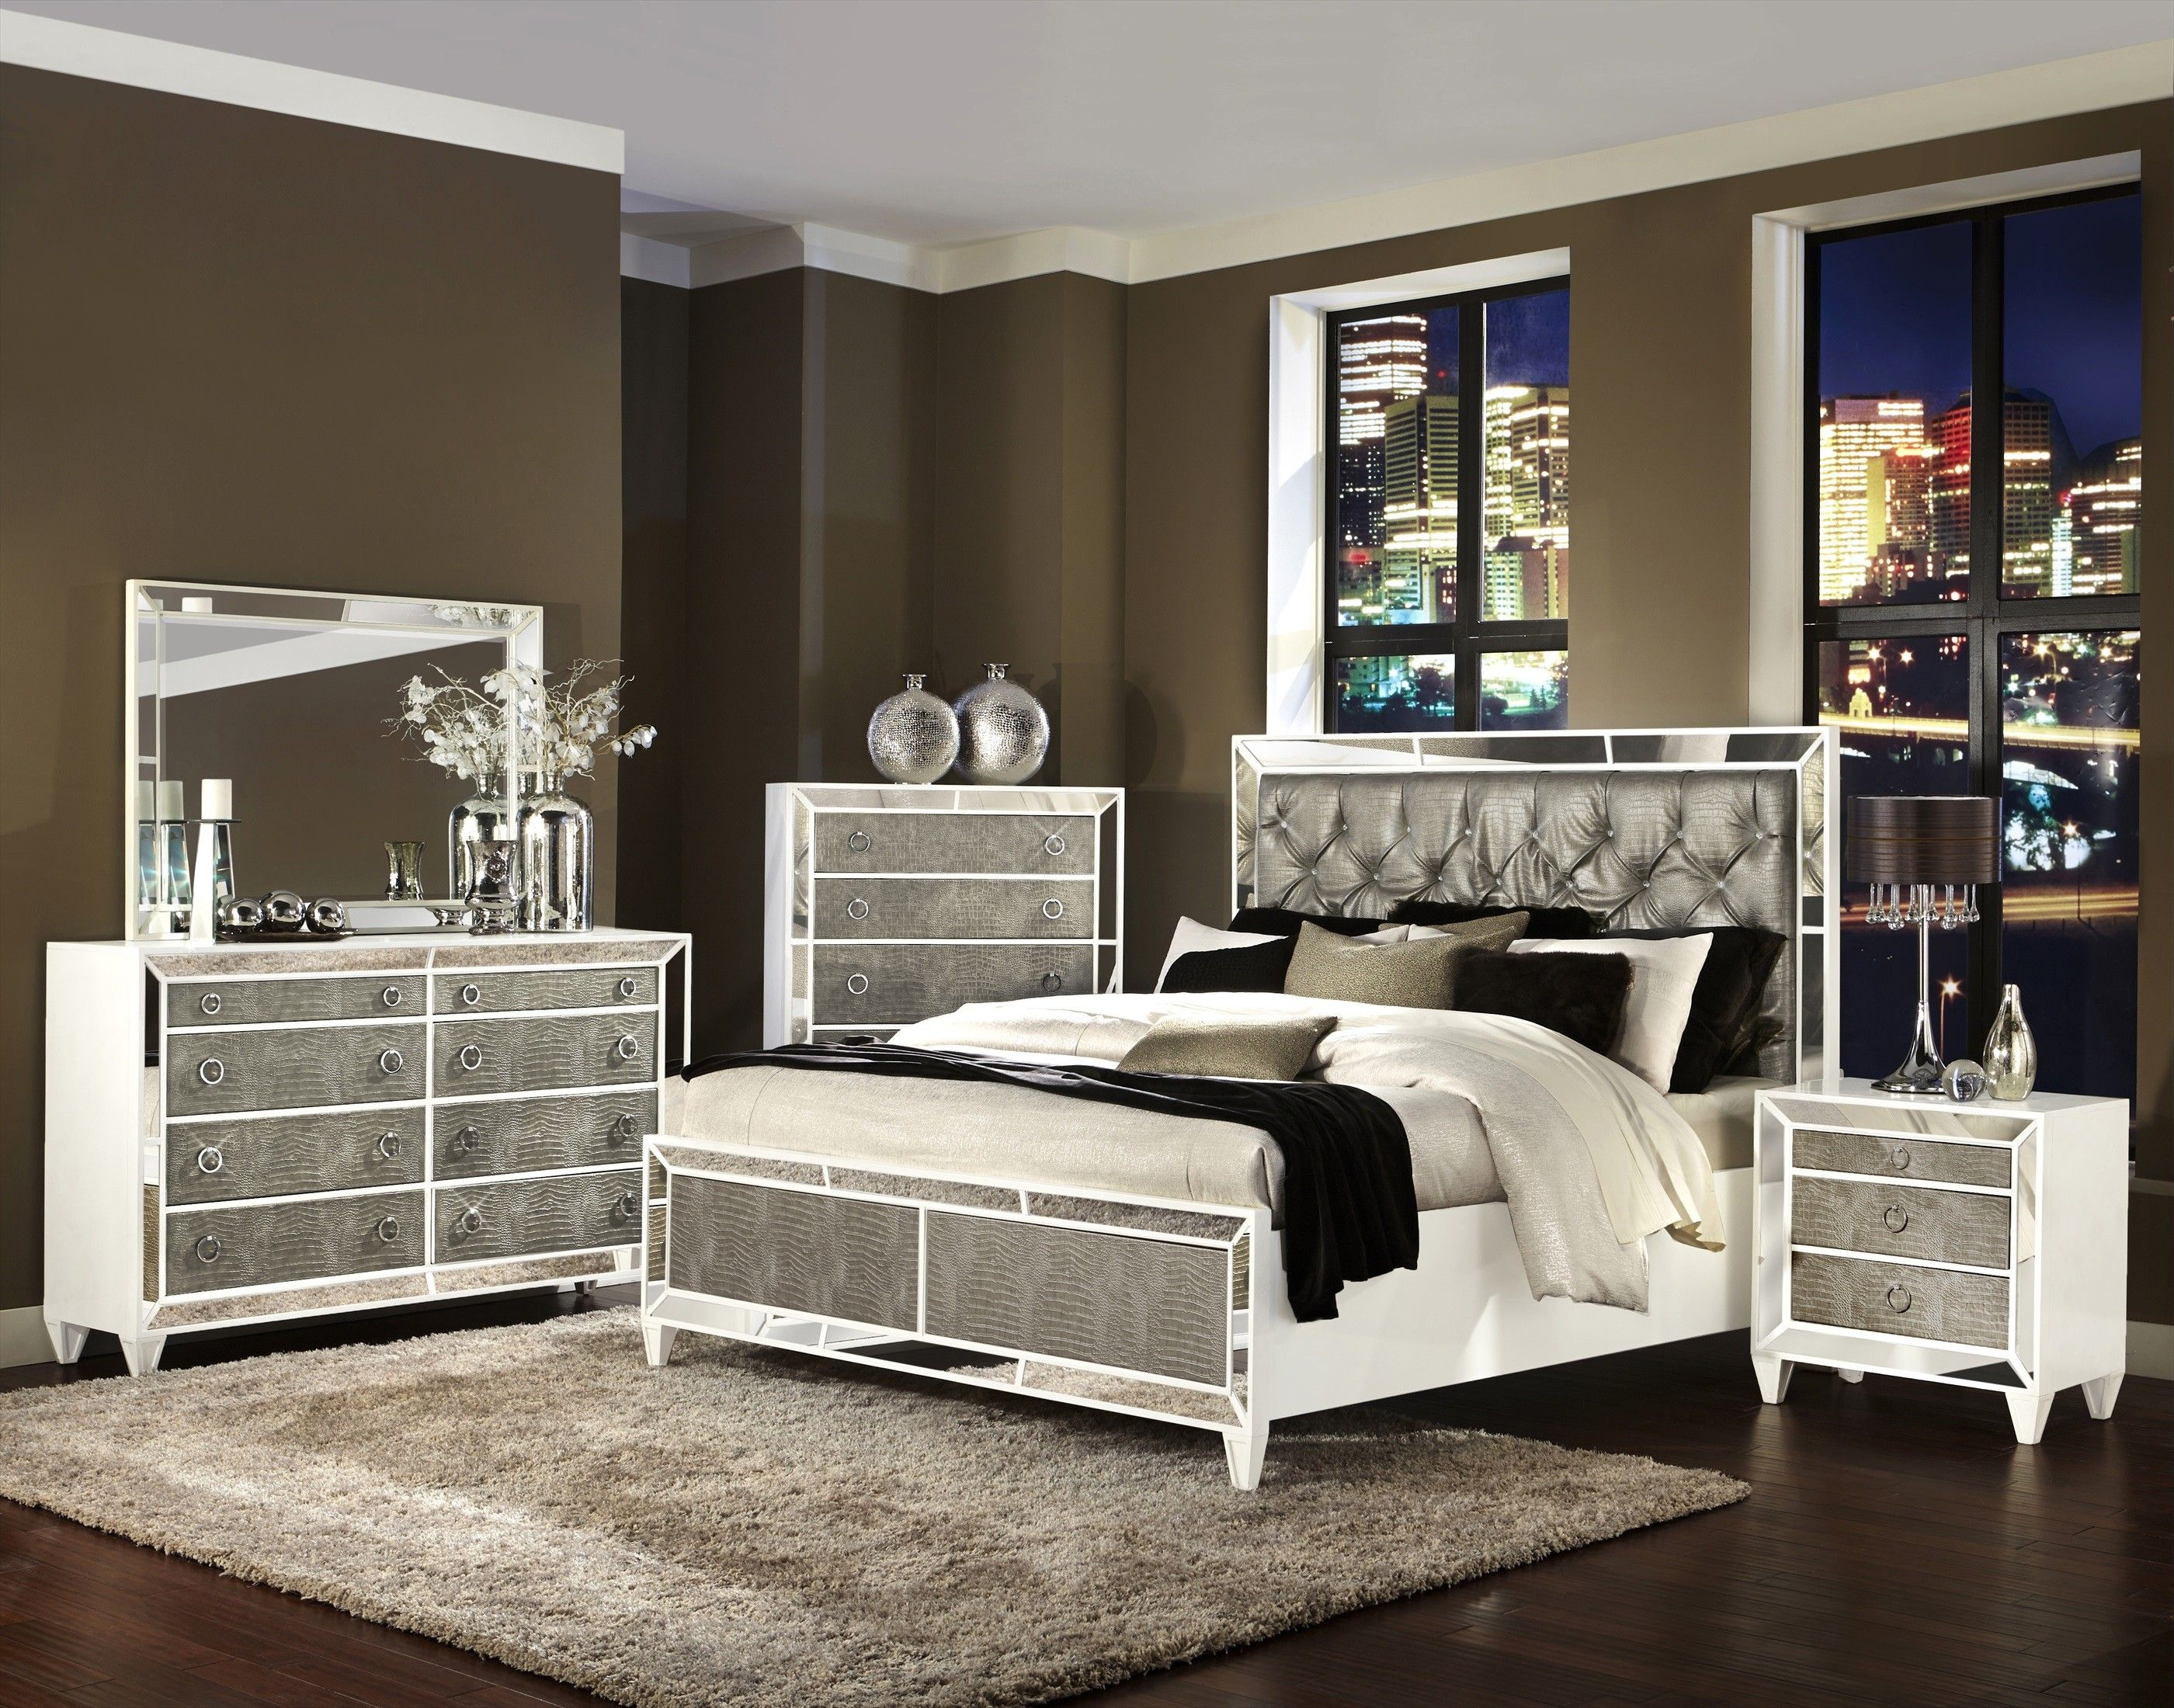 Transitional Pearlized White | DESIGN | Mirrored bedroom furniture ...